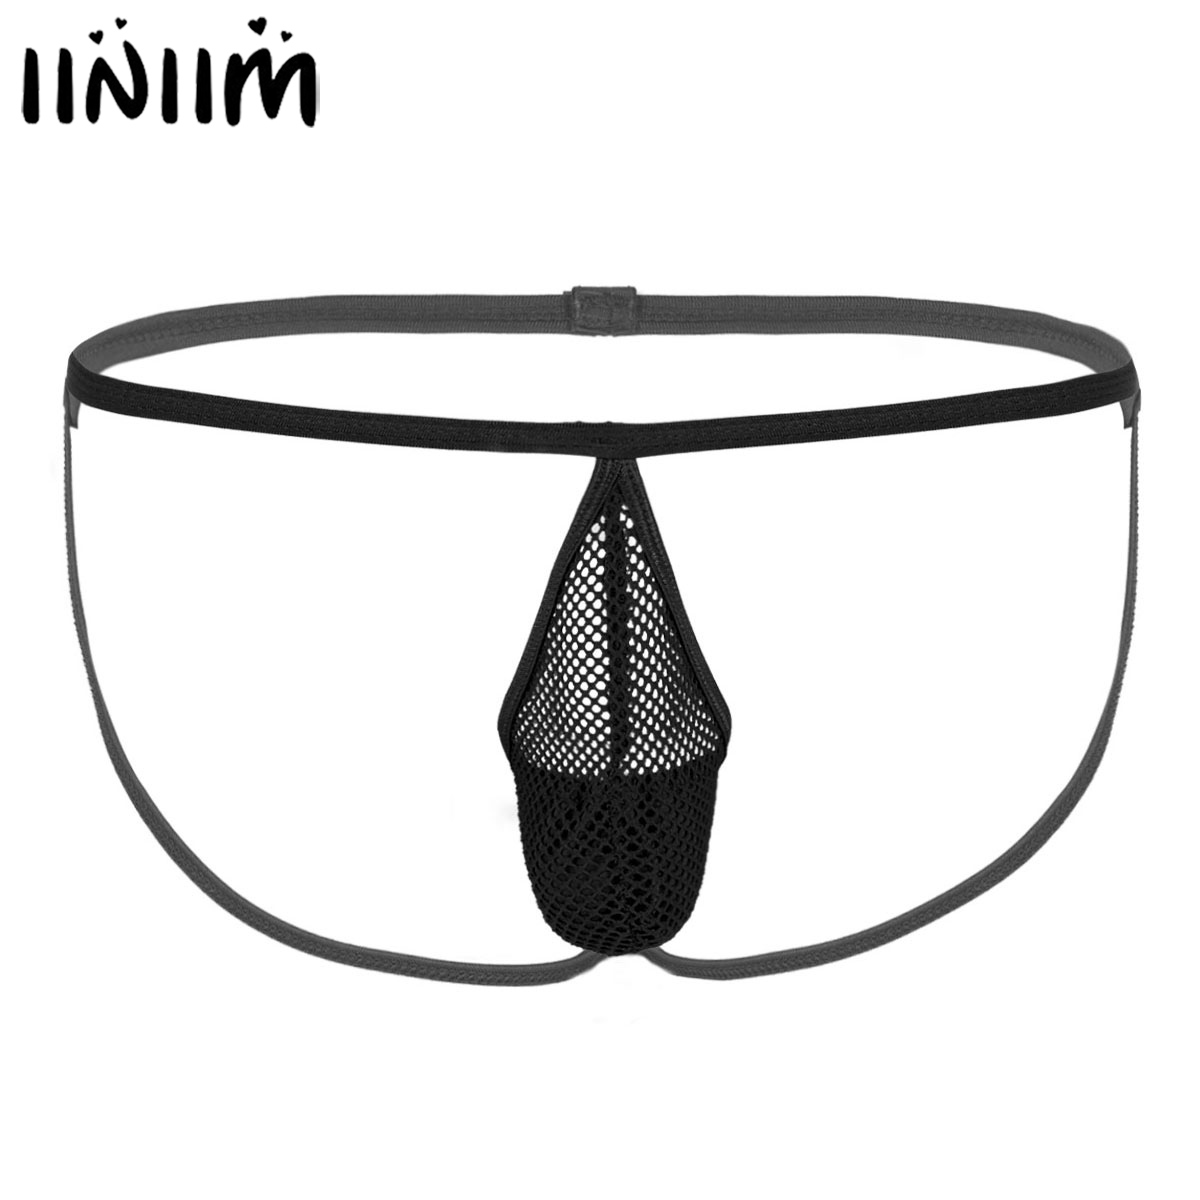 Mens Jockstrap Panties Hot Transparent Fishnet Lingerie Sissy Sexy Crotchless T-Back Tanga Thong Gay Mini G-String Bikini Briefs